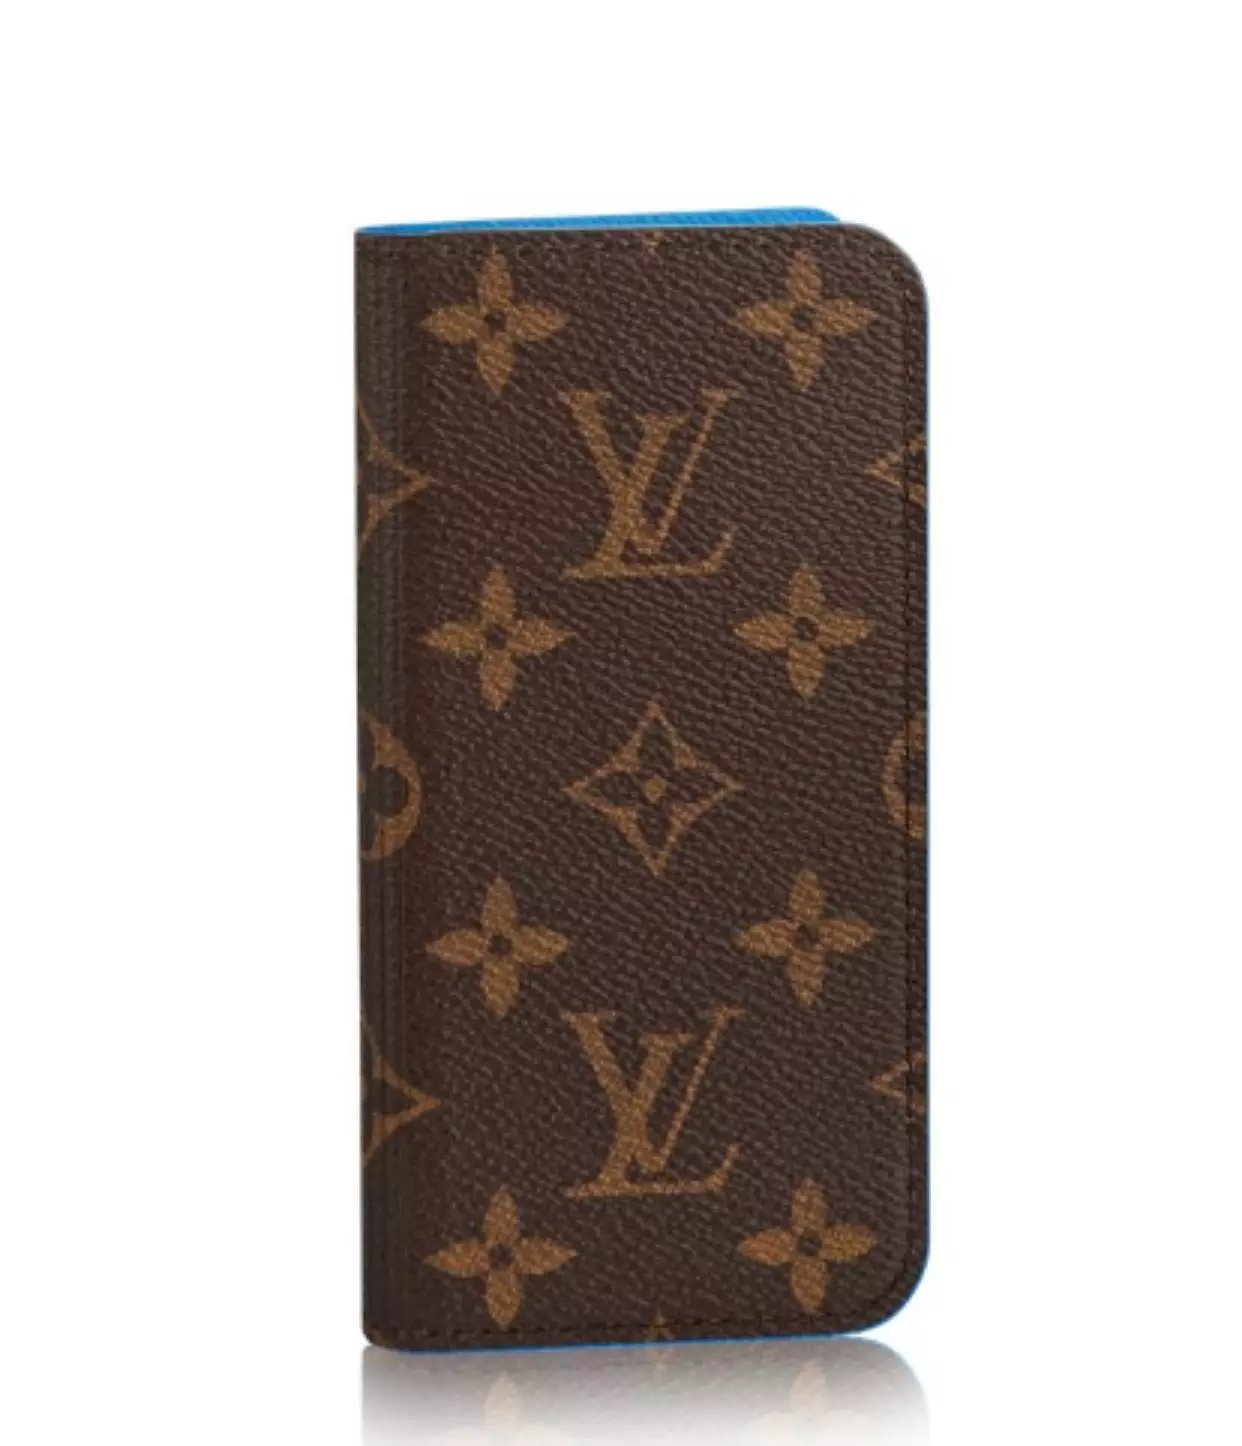 cheap iphone 8 Plus phone cases 8 Plus cover iphone Louis Vuitton iphone 8 Plus case mophie plus iPhone 8 Plus tory burch iphone 8 Plus case power packs plus cool phone covers apple store screen protector iPhone 8 Plus accessories